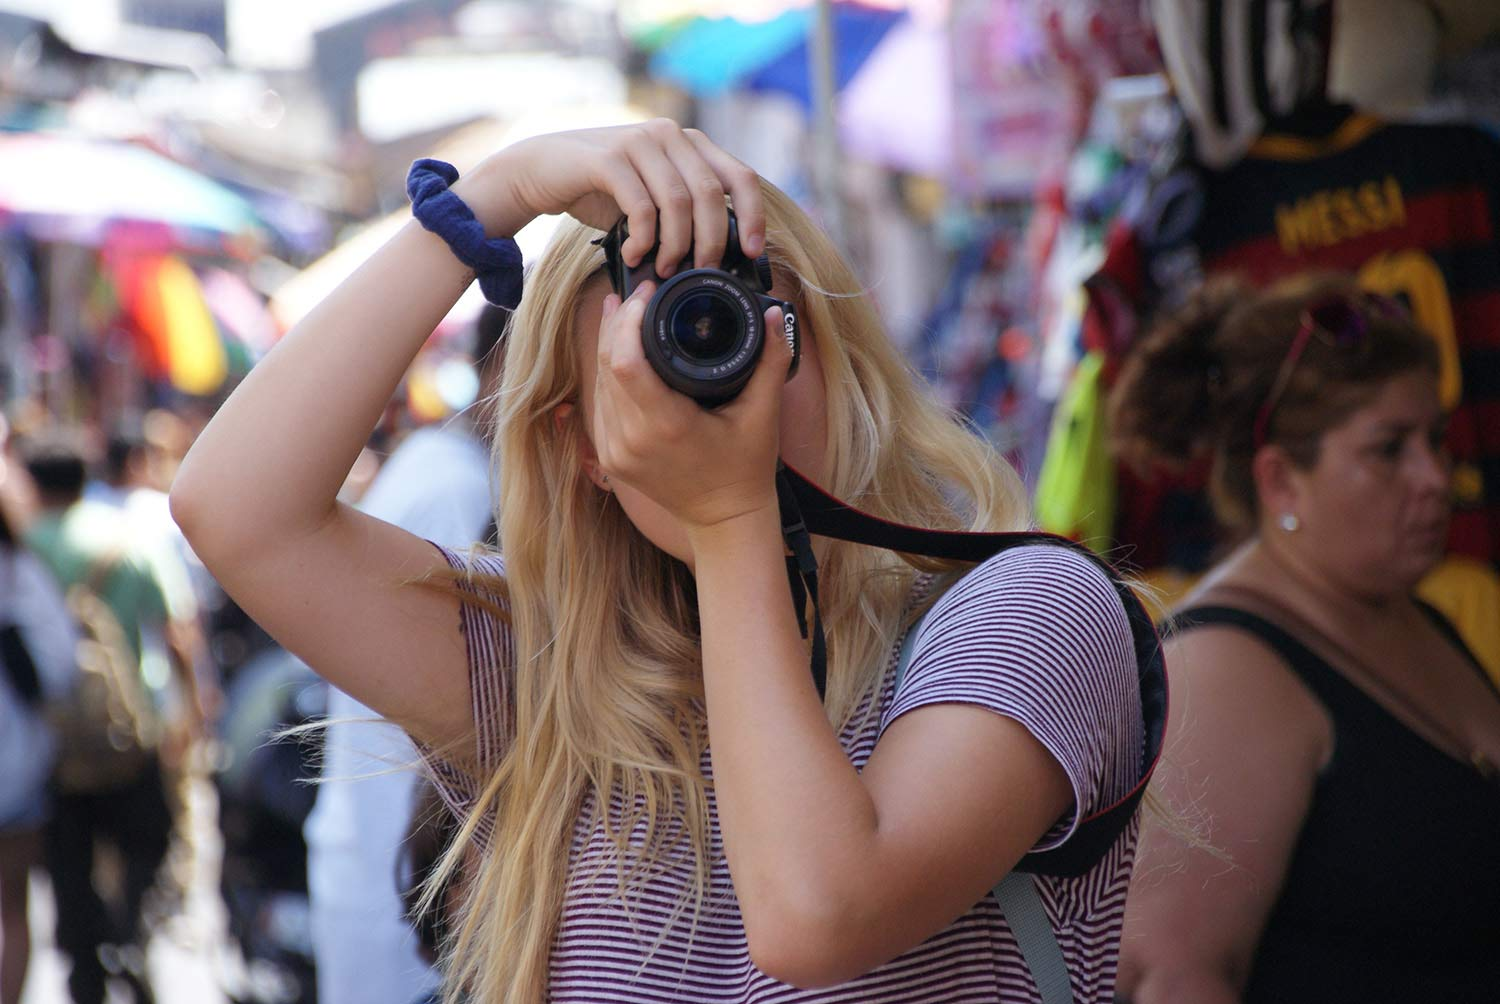 Basic Digital Photography for Teens (ages 15-18) with Gina Valona (One week) – Summer